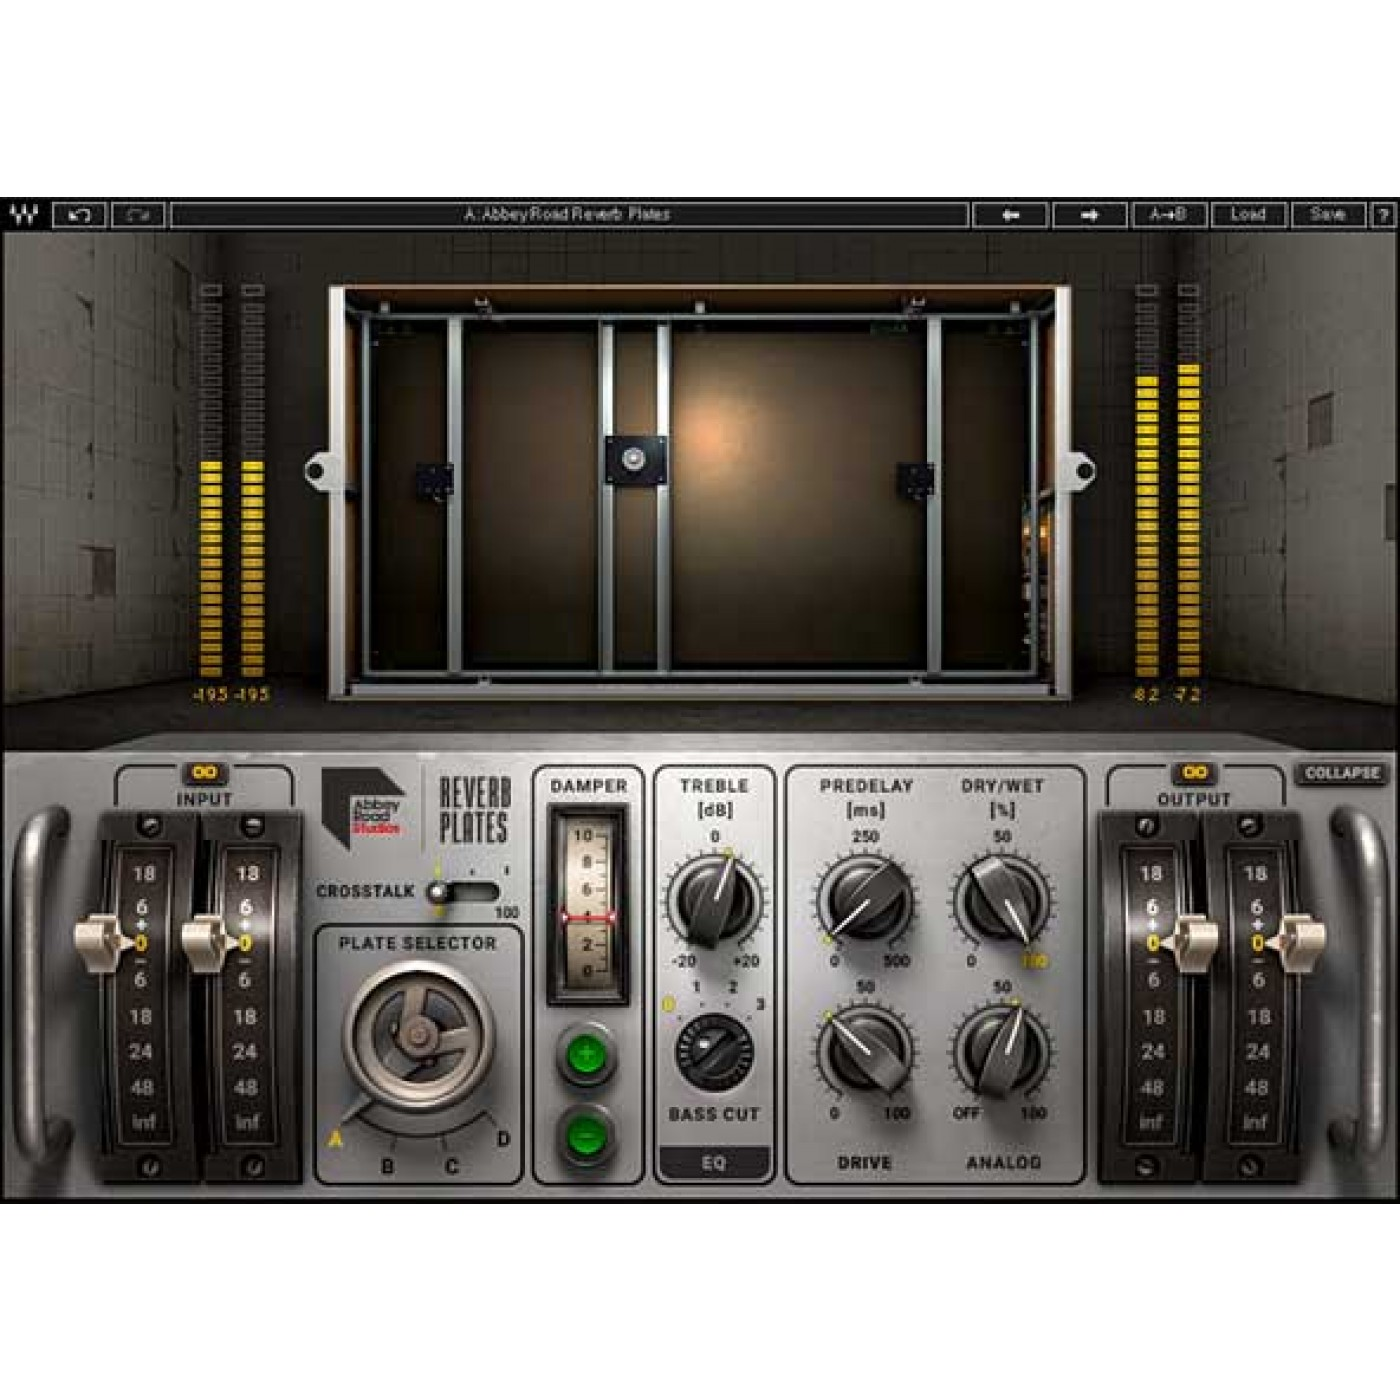 Waves Abbey Road Reverb Plates | Rage Audio